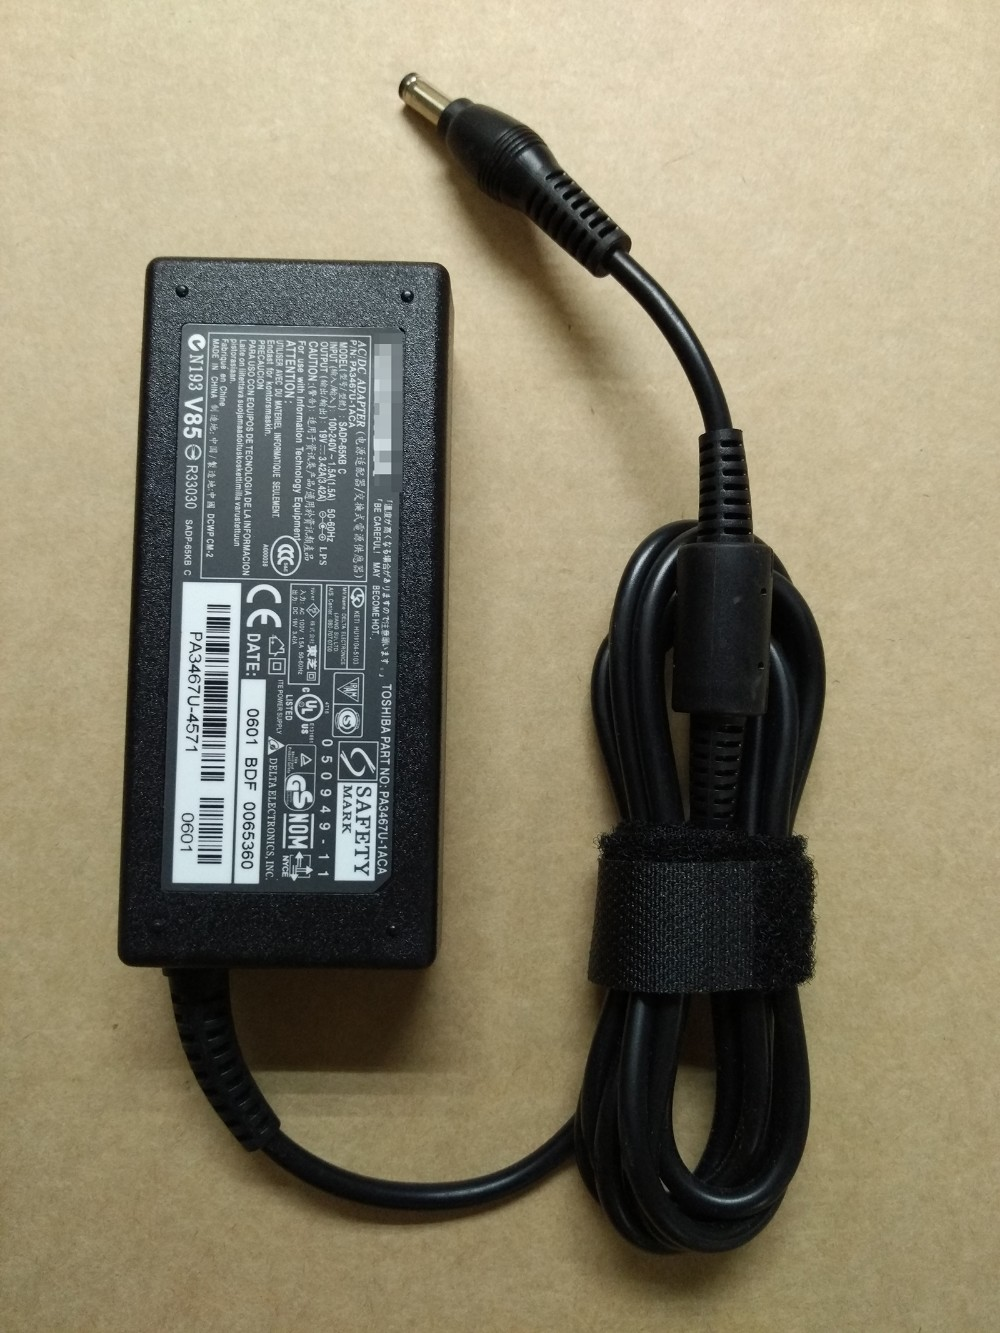 19V 3.42A 5.5 x 2.5mm Replacement AC Power Adapter Charger for Toshiba Laptop